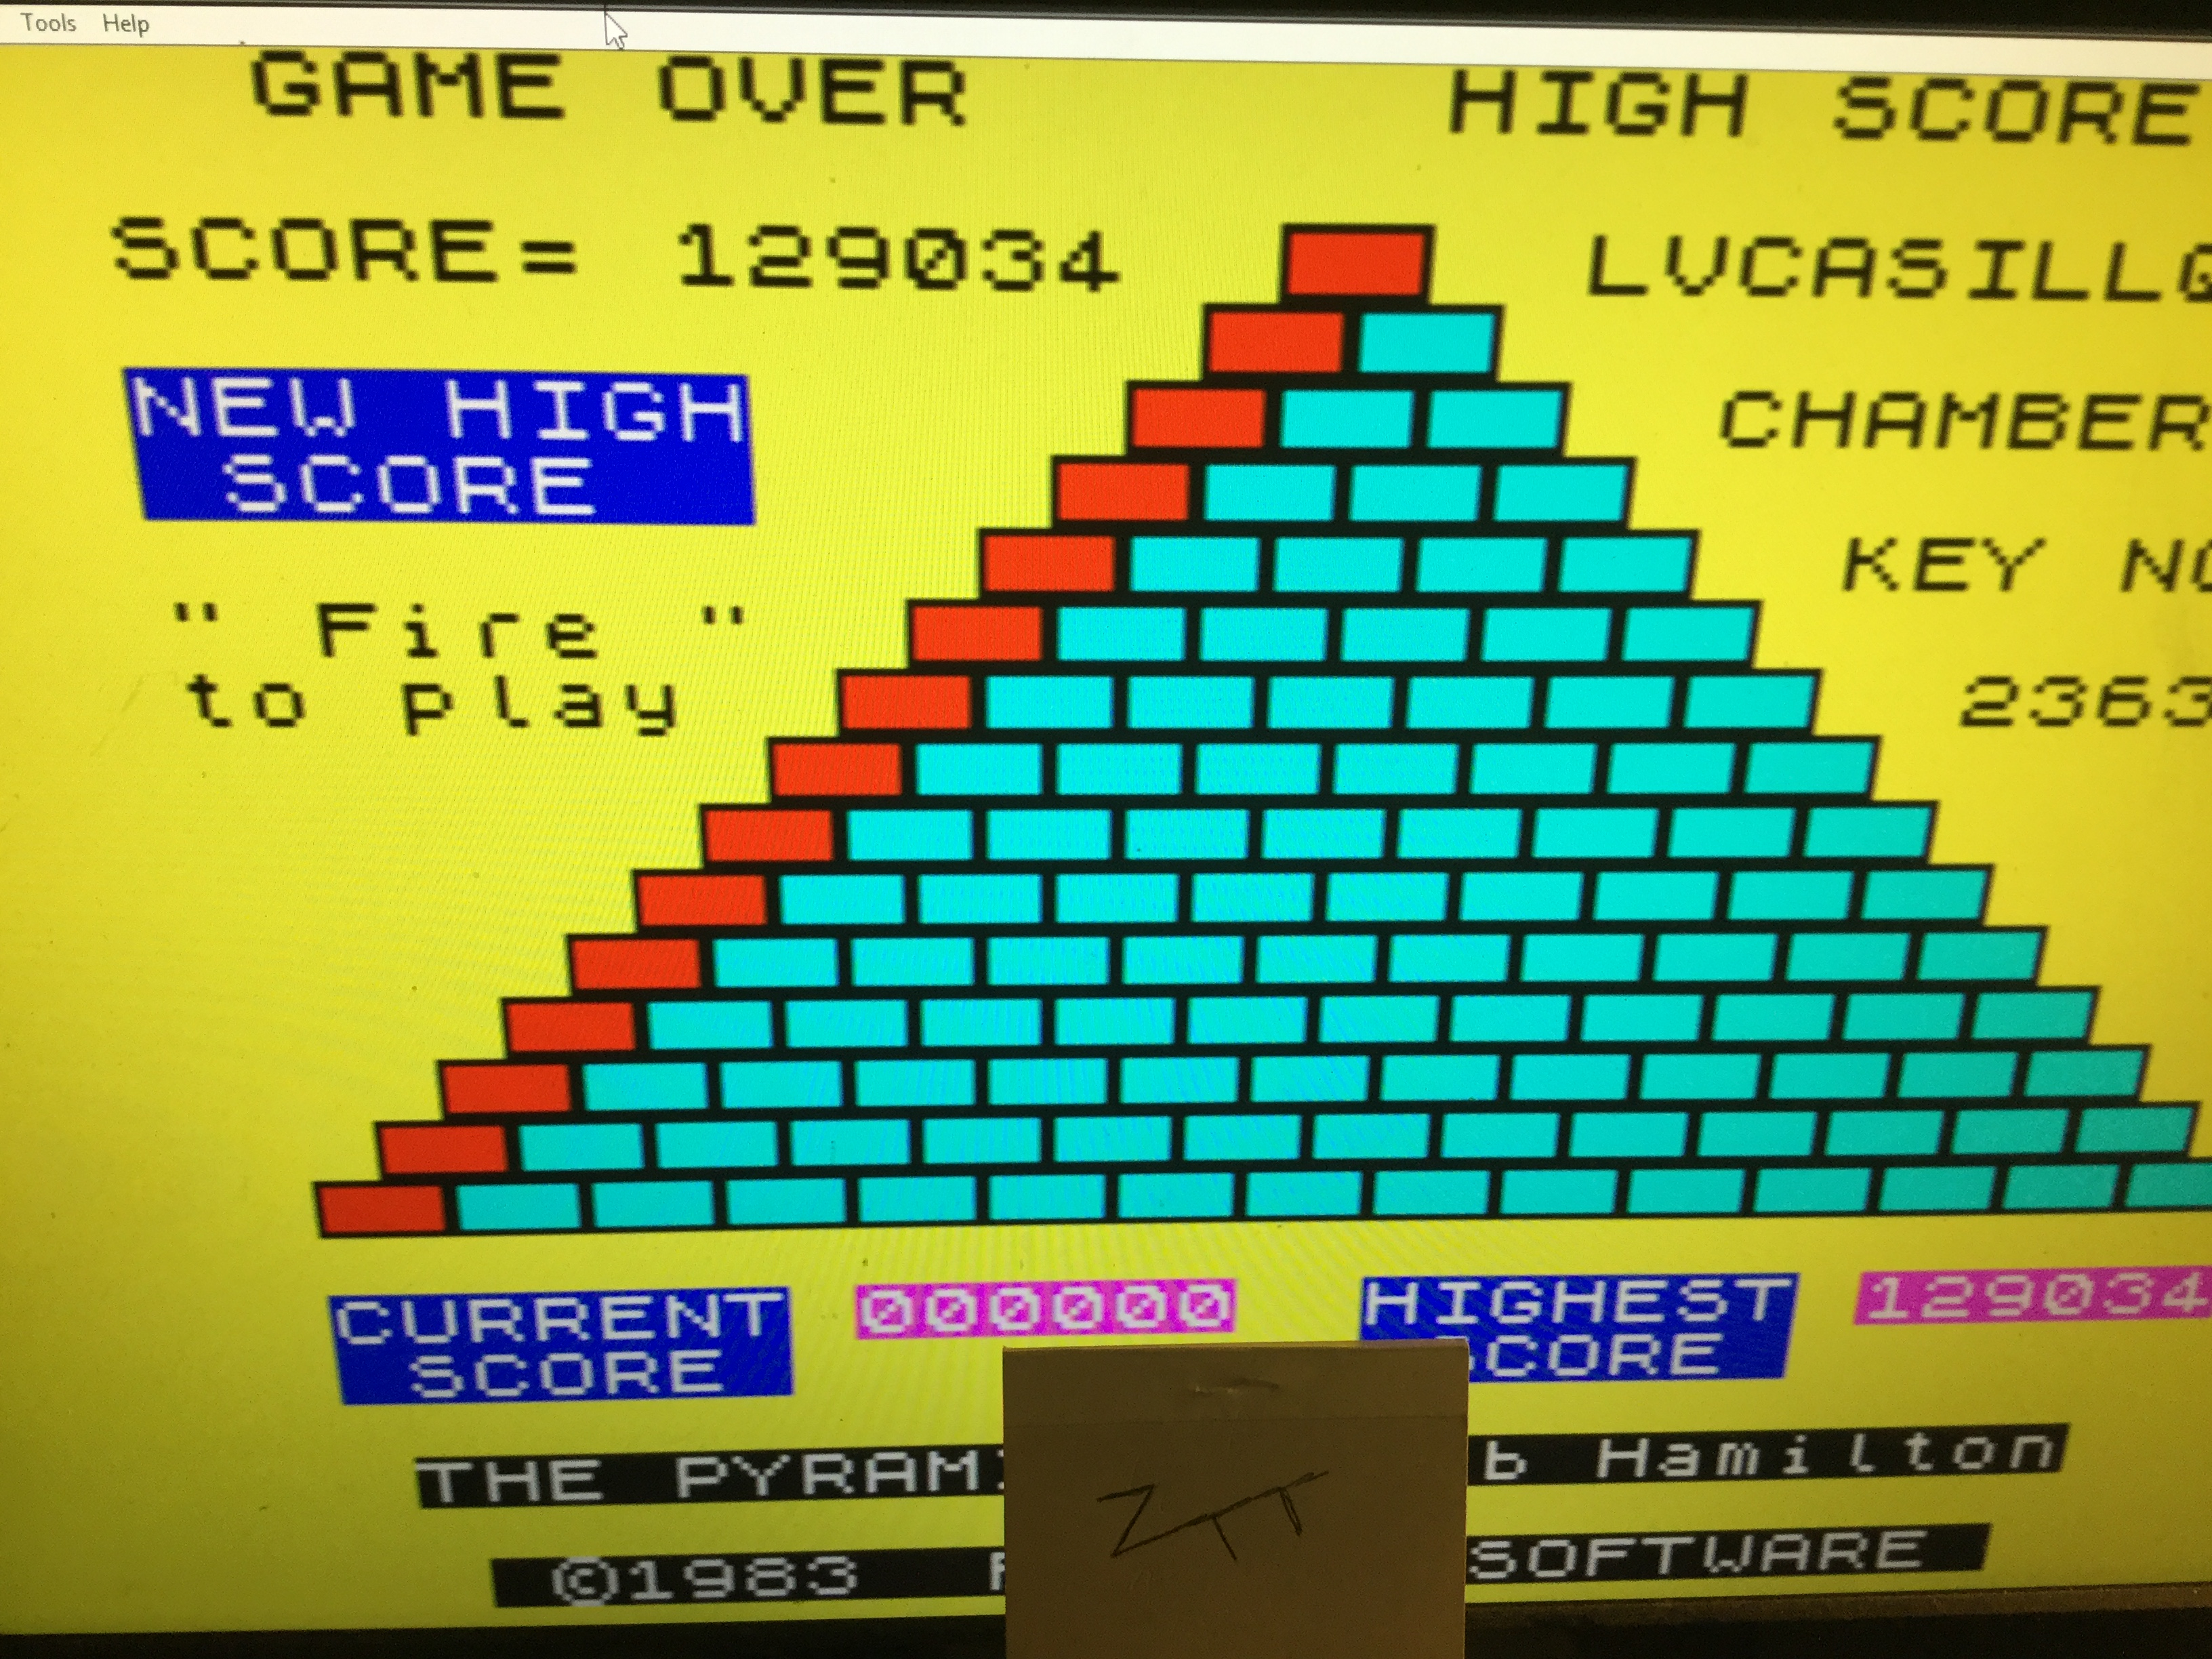 Frankie: The Pyramid (ZX Spectrum Emulated) 129,034 points on 2019-03-22 16:12:55